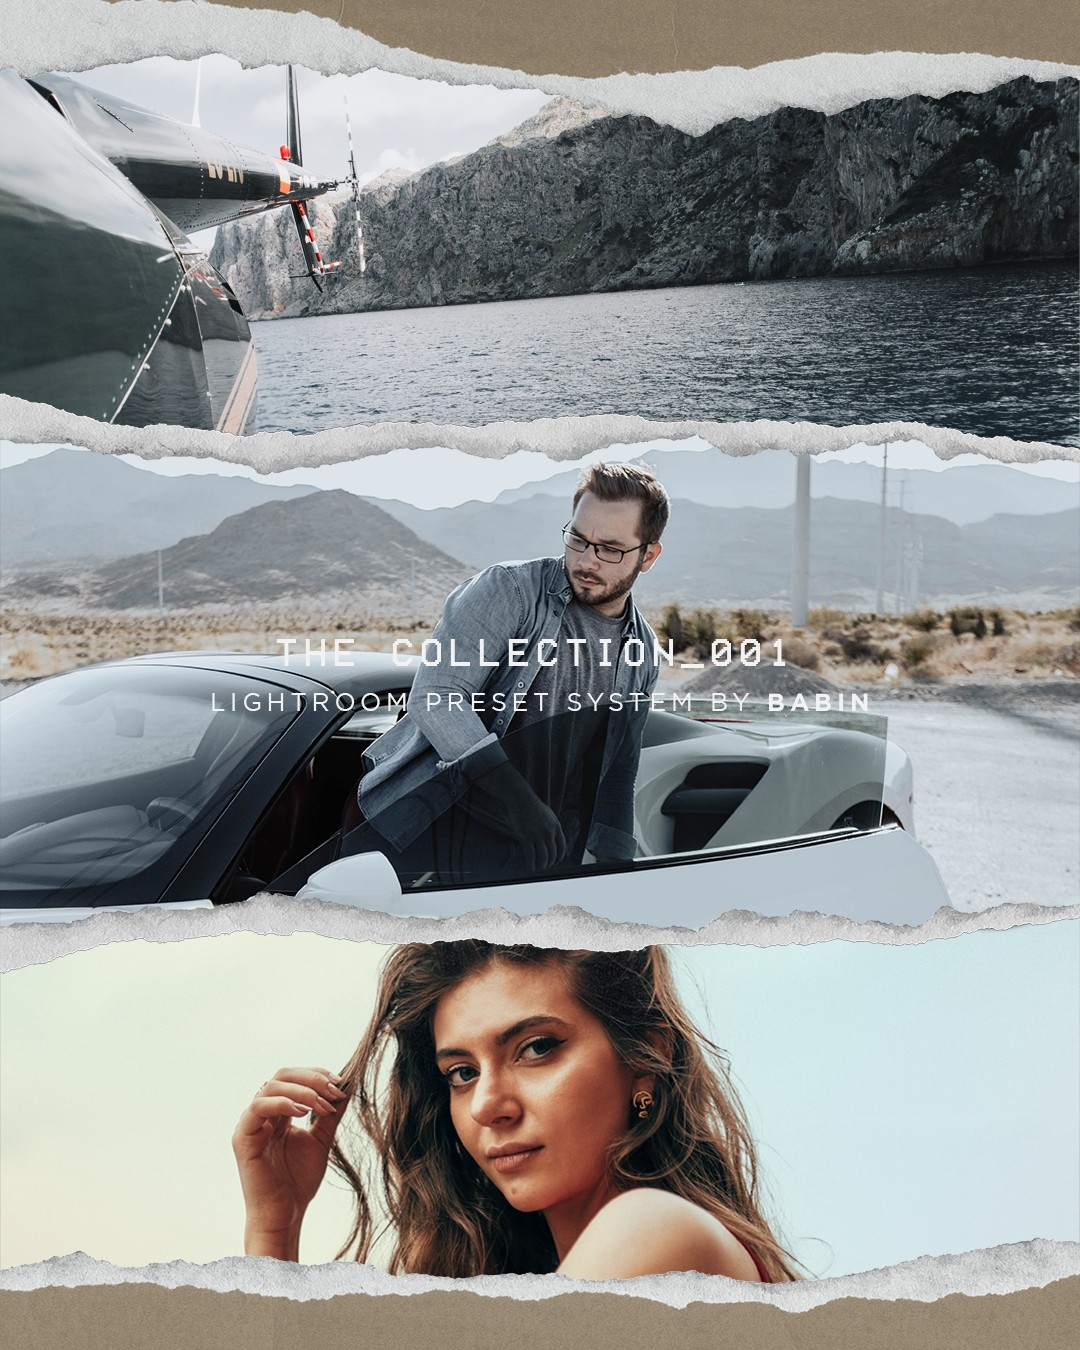 Babin Preset Collection 001